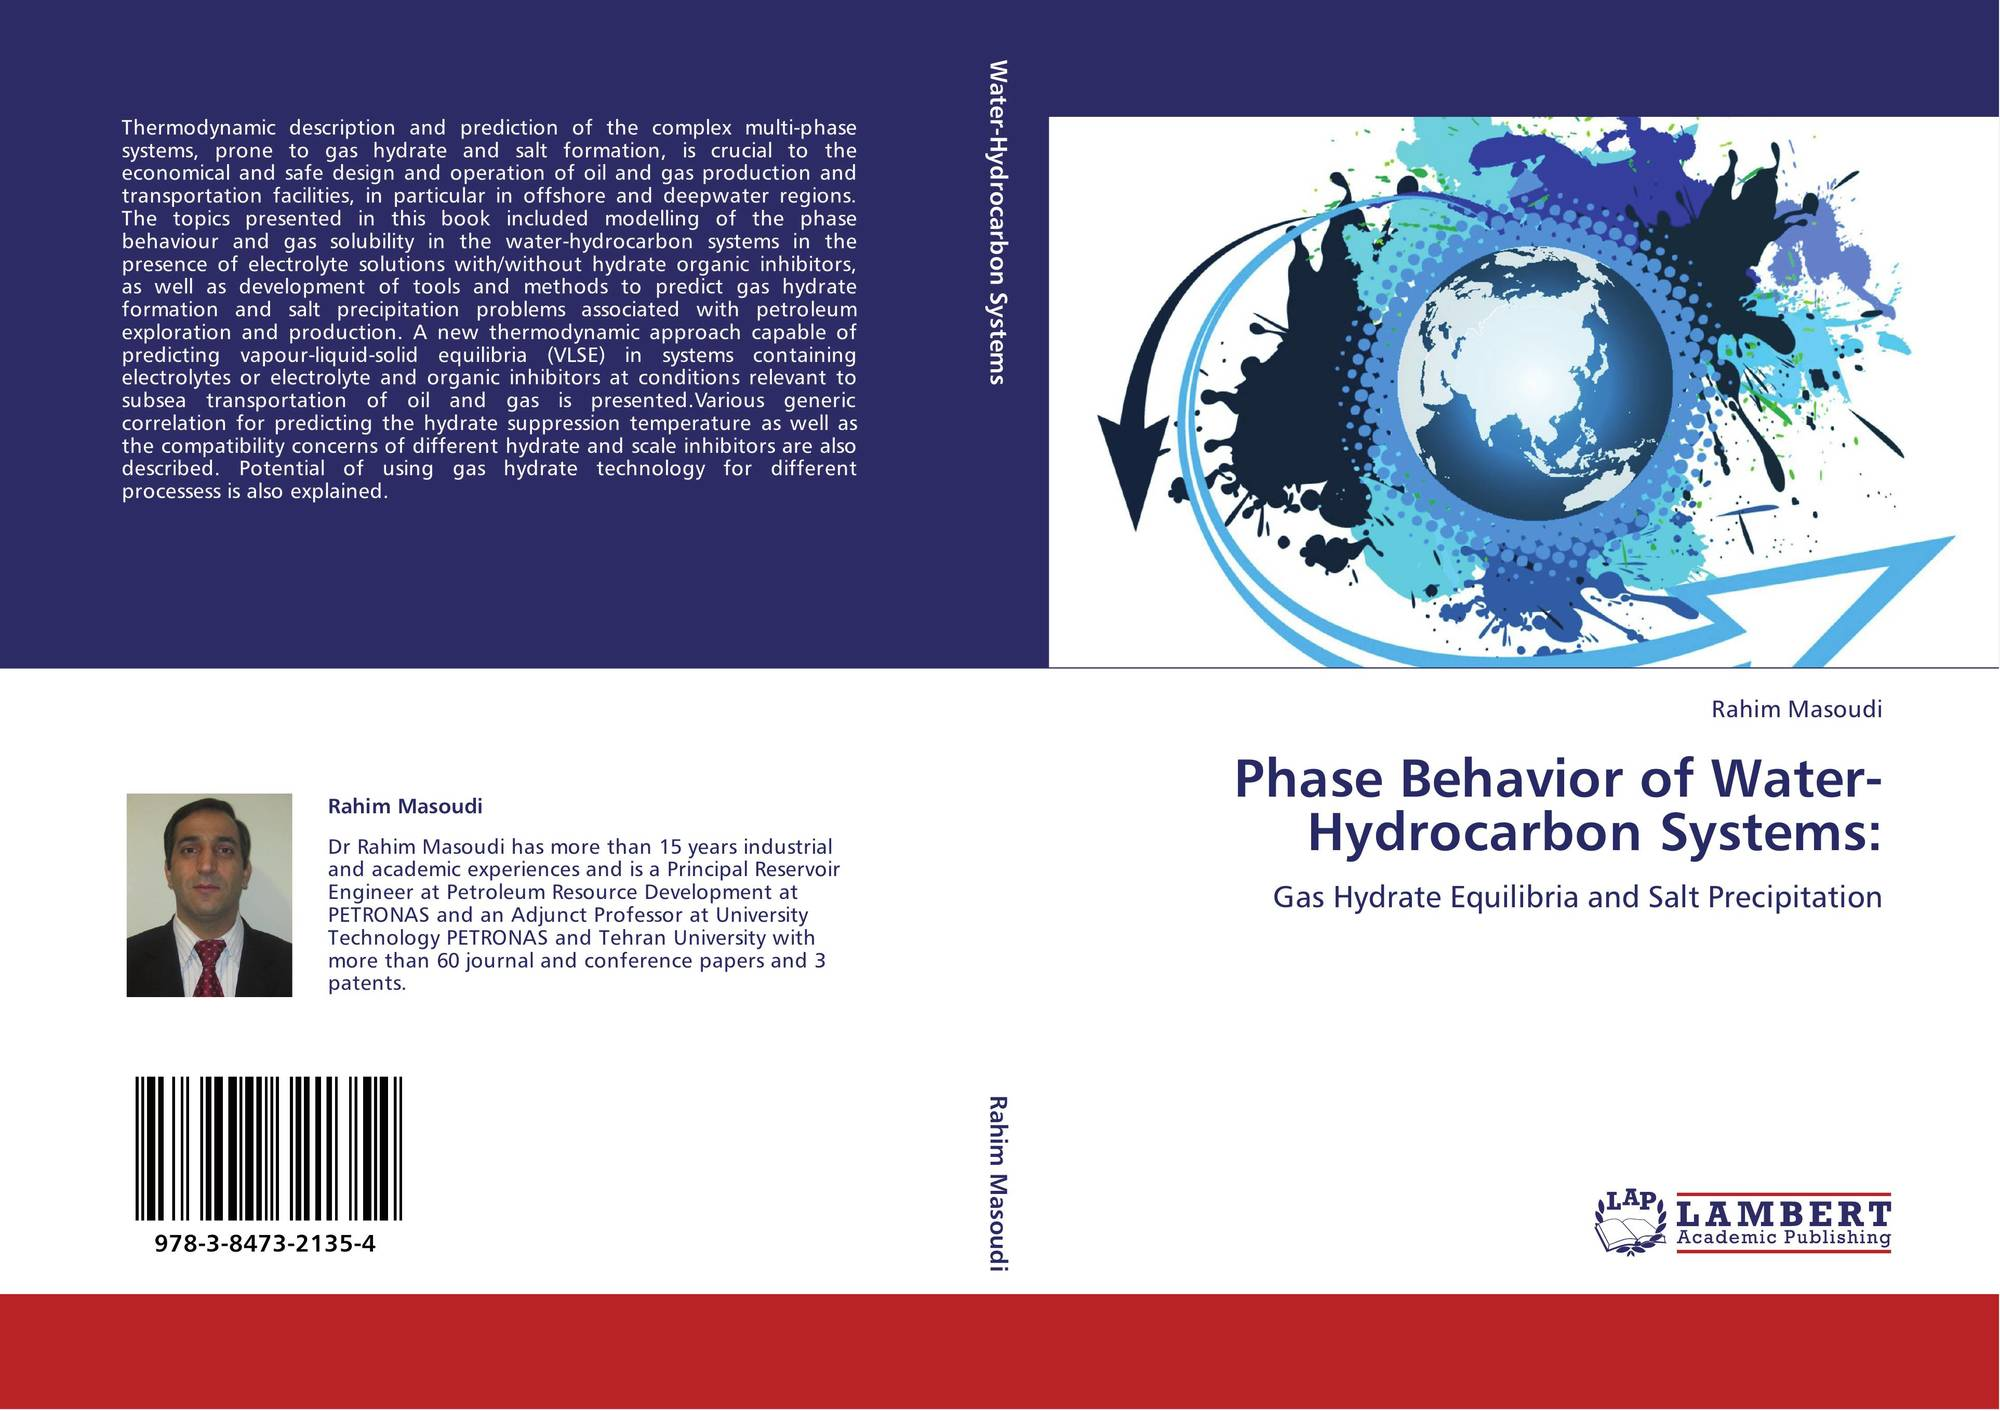 Bookcover of Phase Behavior of Water-Hydrocarbon Systems: Omni badge  9307e2201e5f762643a64561af3456be64a87707602f96b92ef18a9bbcada116